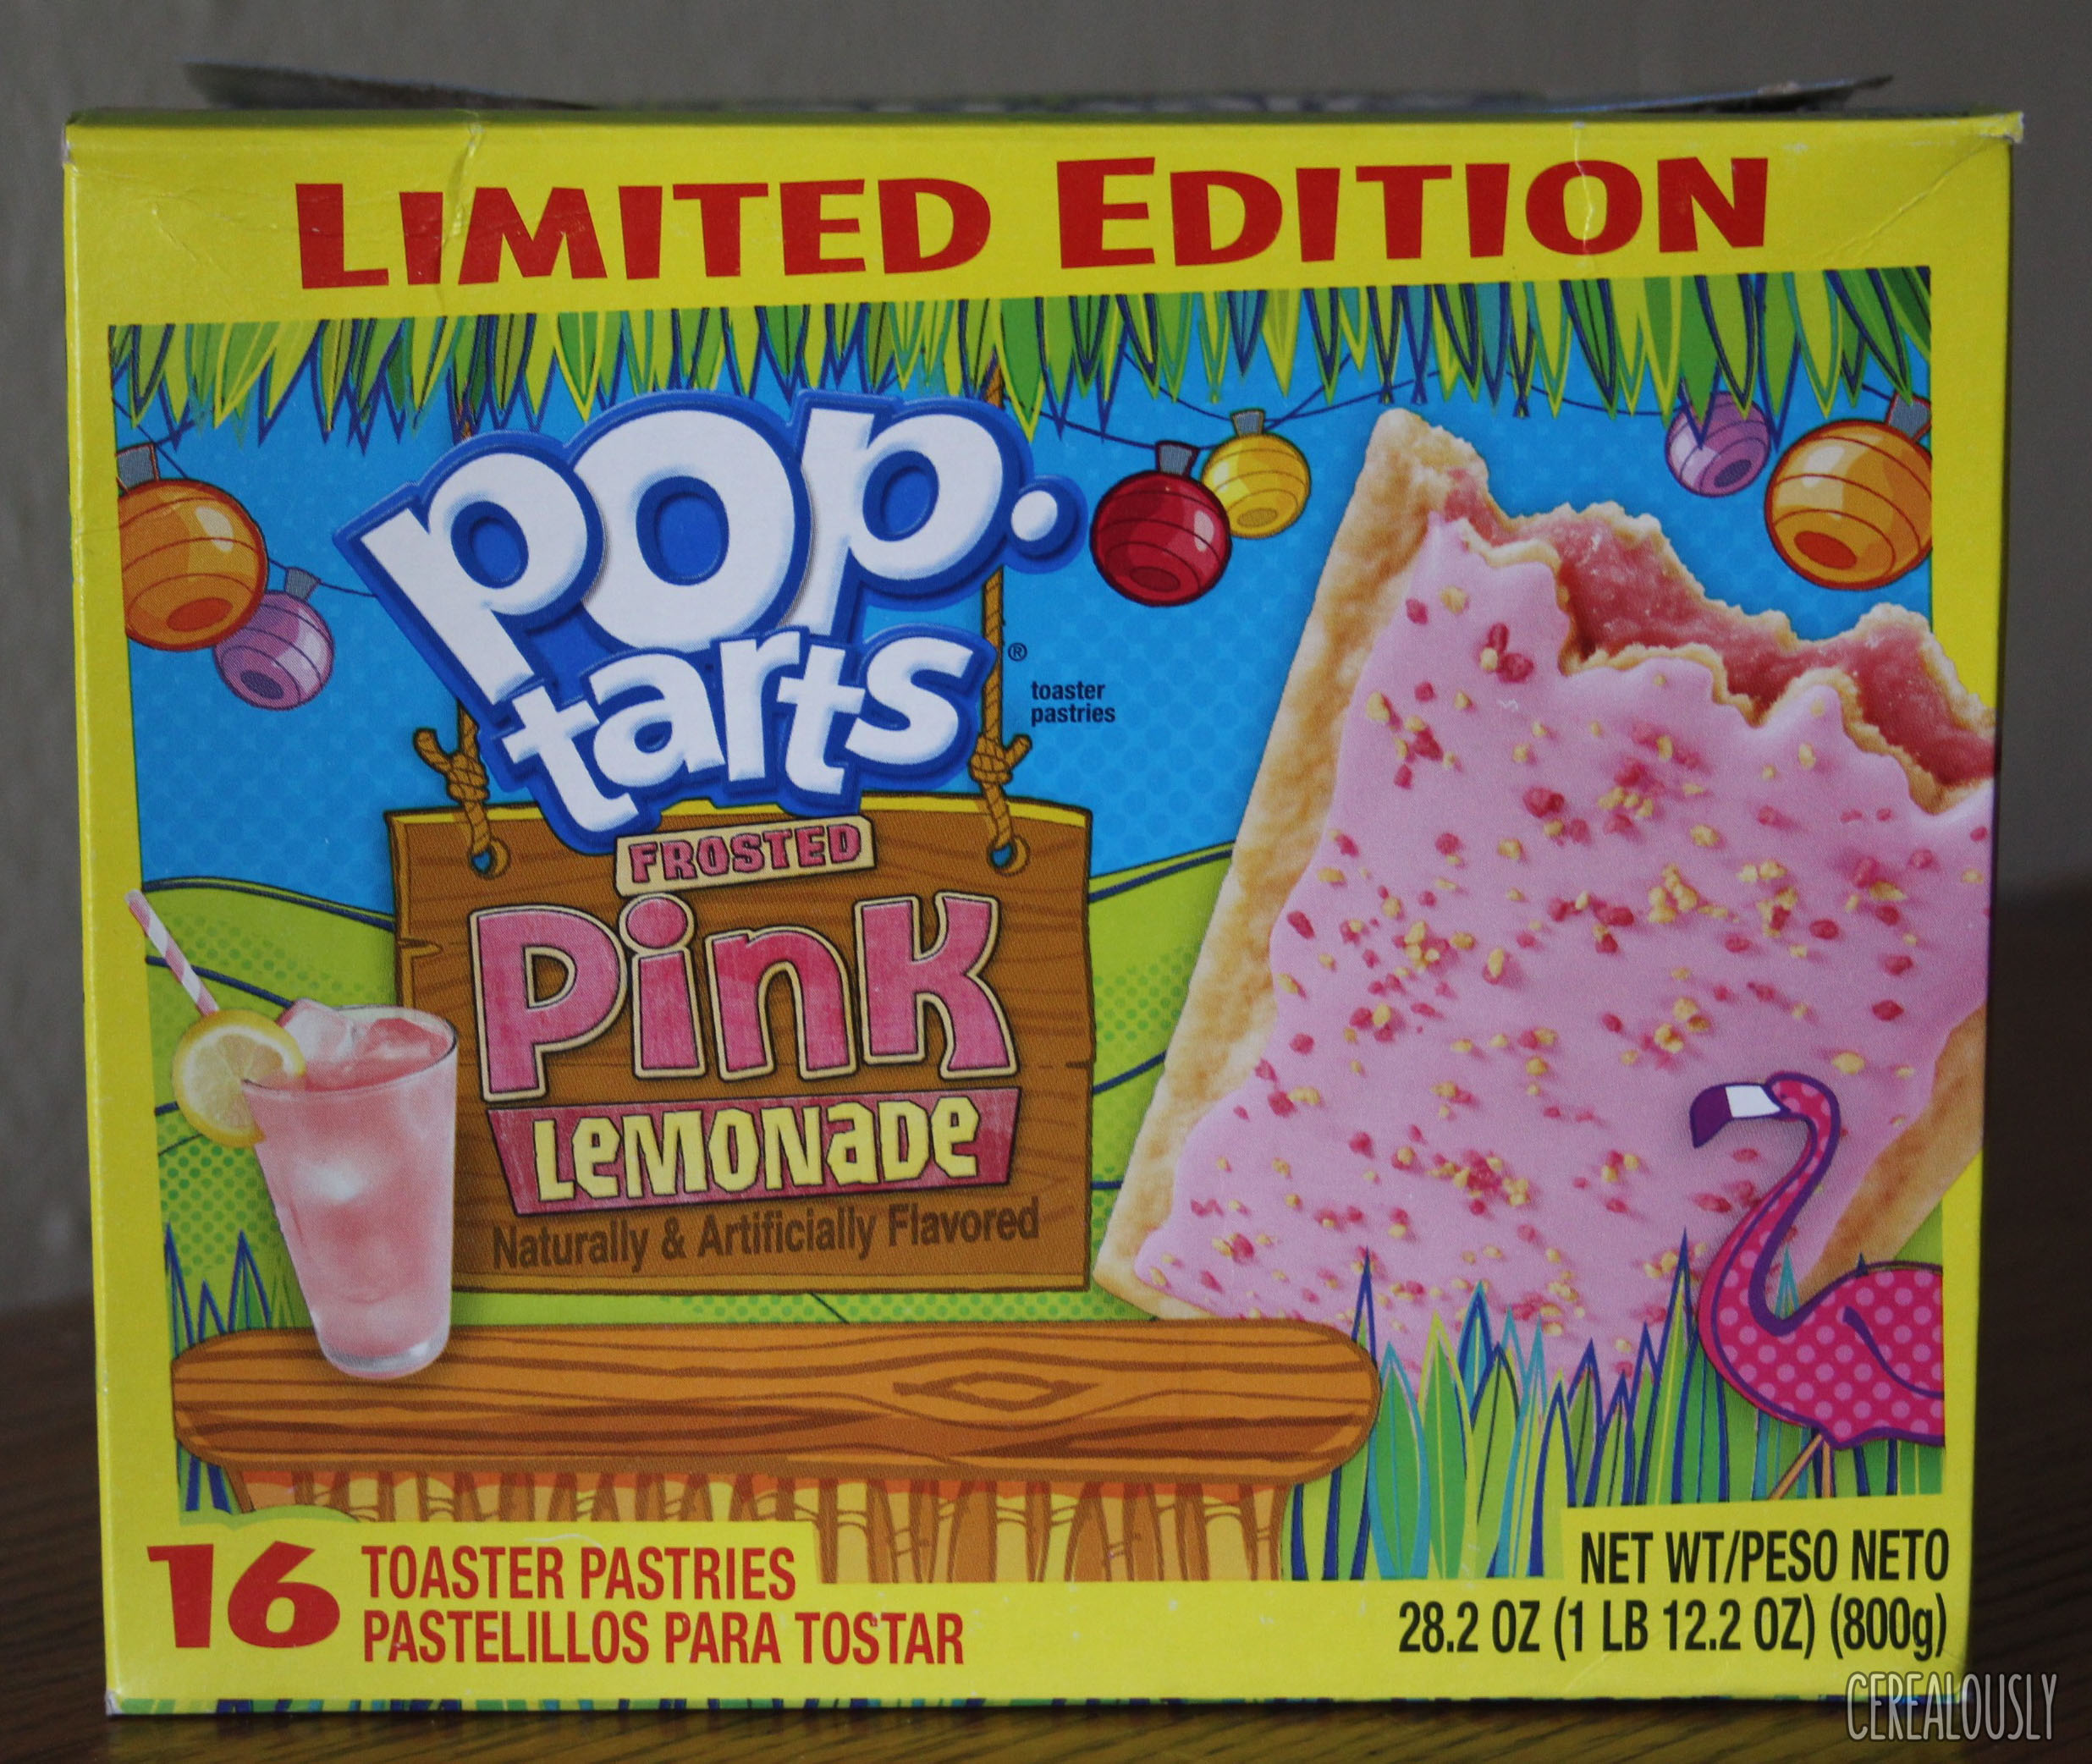 Review: Kellogg's Limited Edition Frosted Pink Lemonade Pop-Tarts